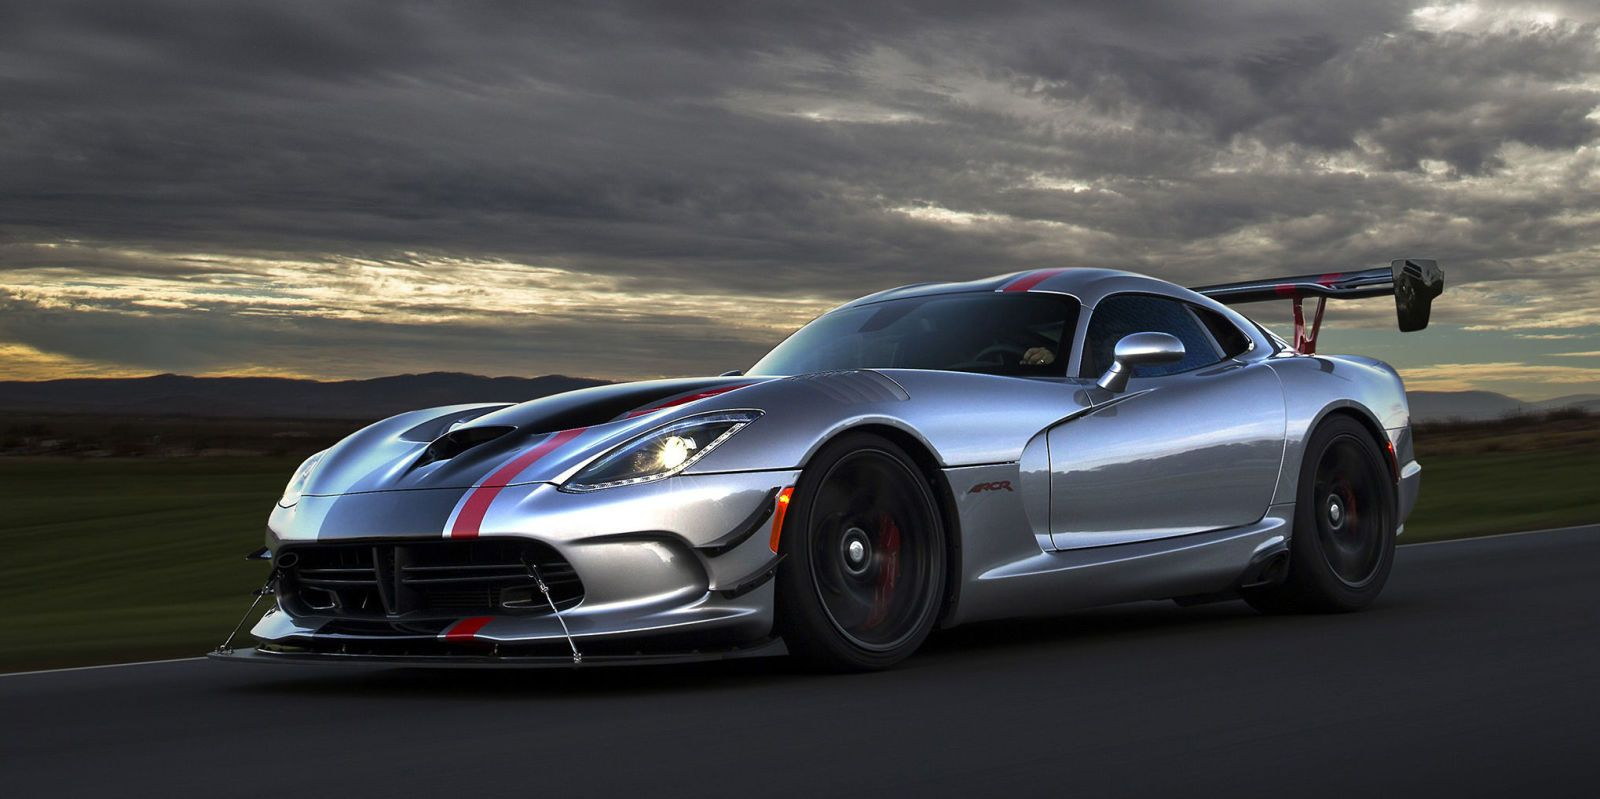 Dodge Goes All Out With The 2016 Viper Acr Pinterest Viper Cars